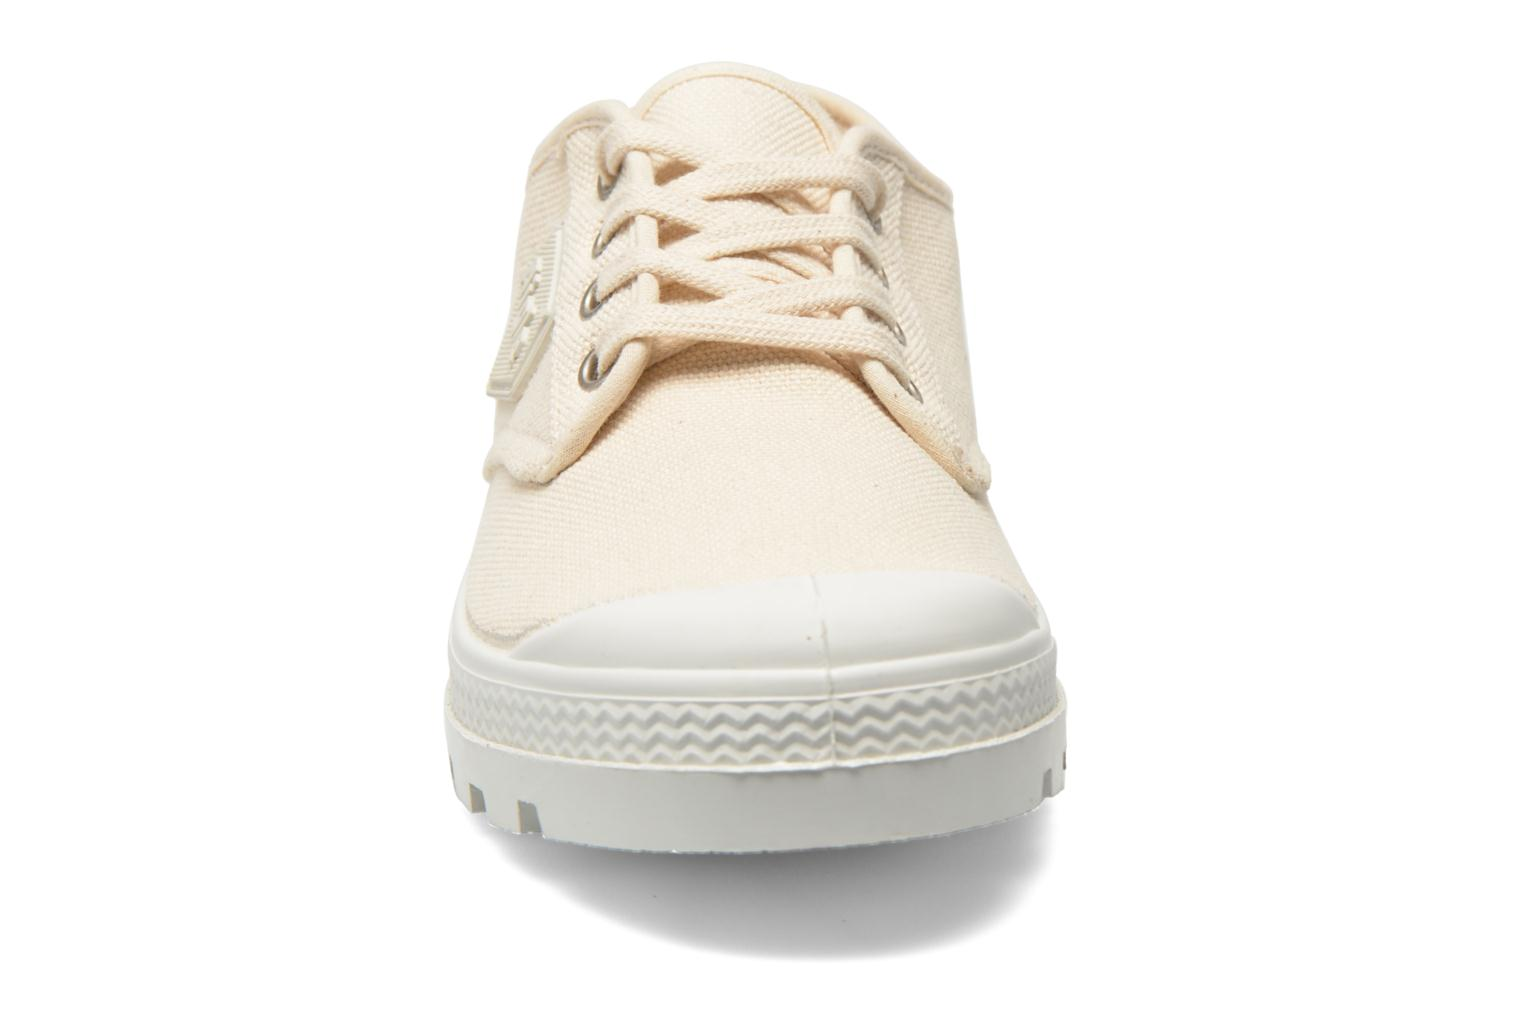 Rubber Saint Germain Low W Offwhite/Off White